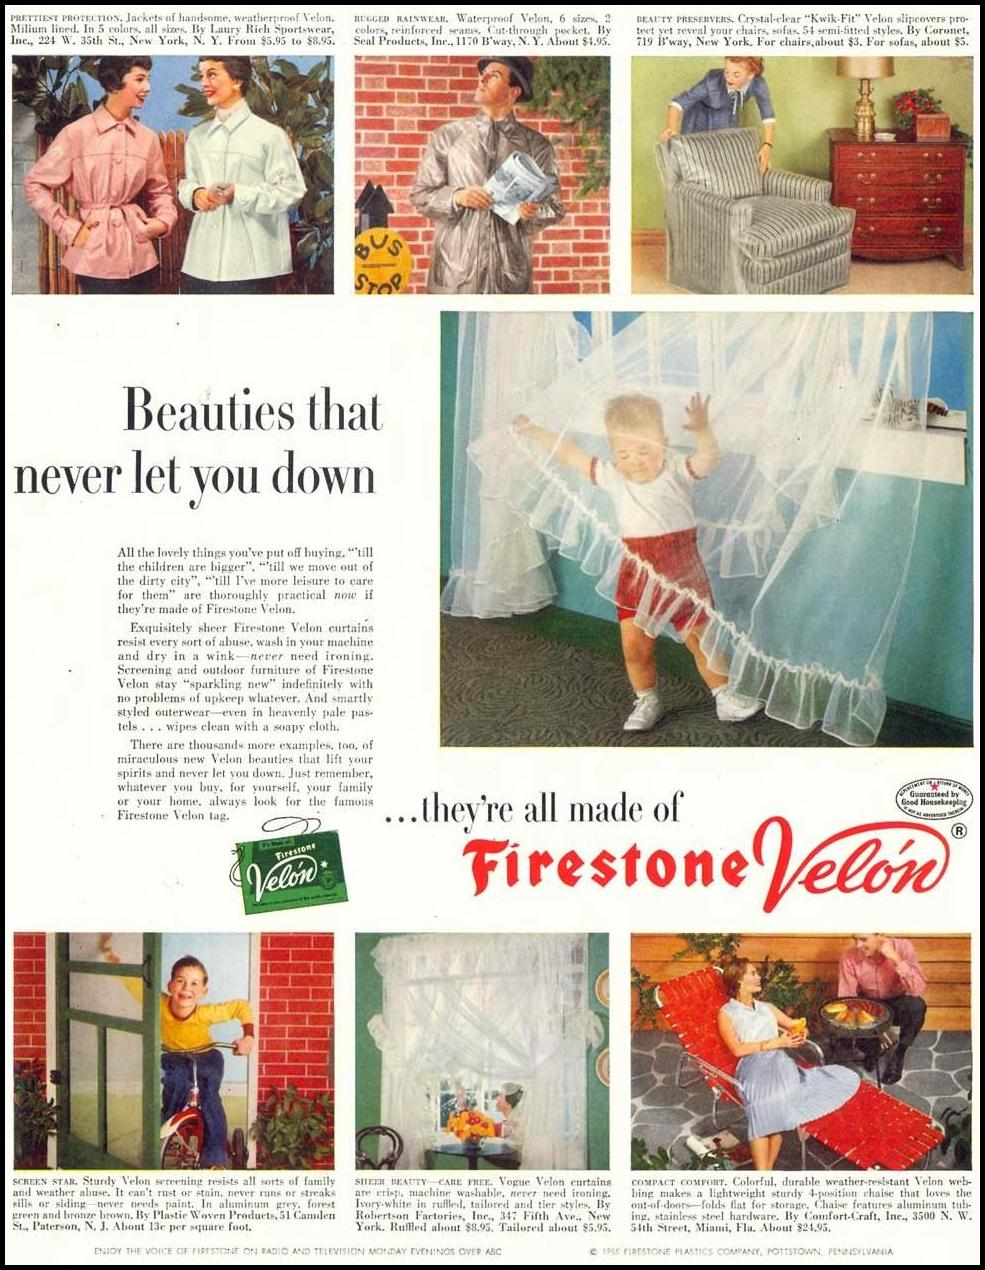 FIRESTONE VELON SATURDAY EVENING POST 03/26/1955 p. 81